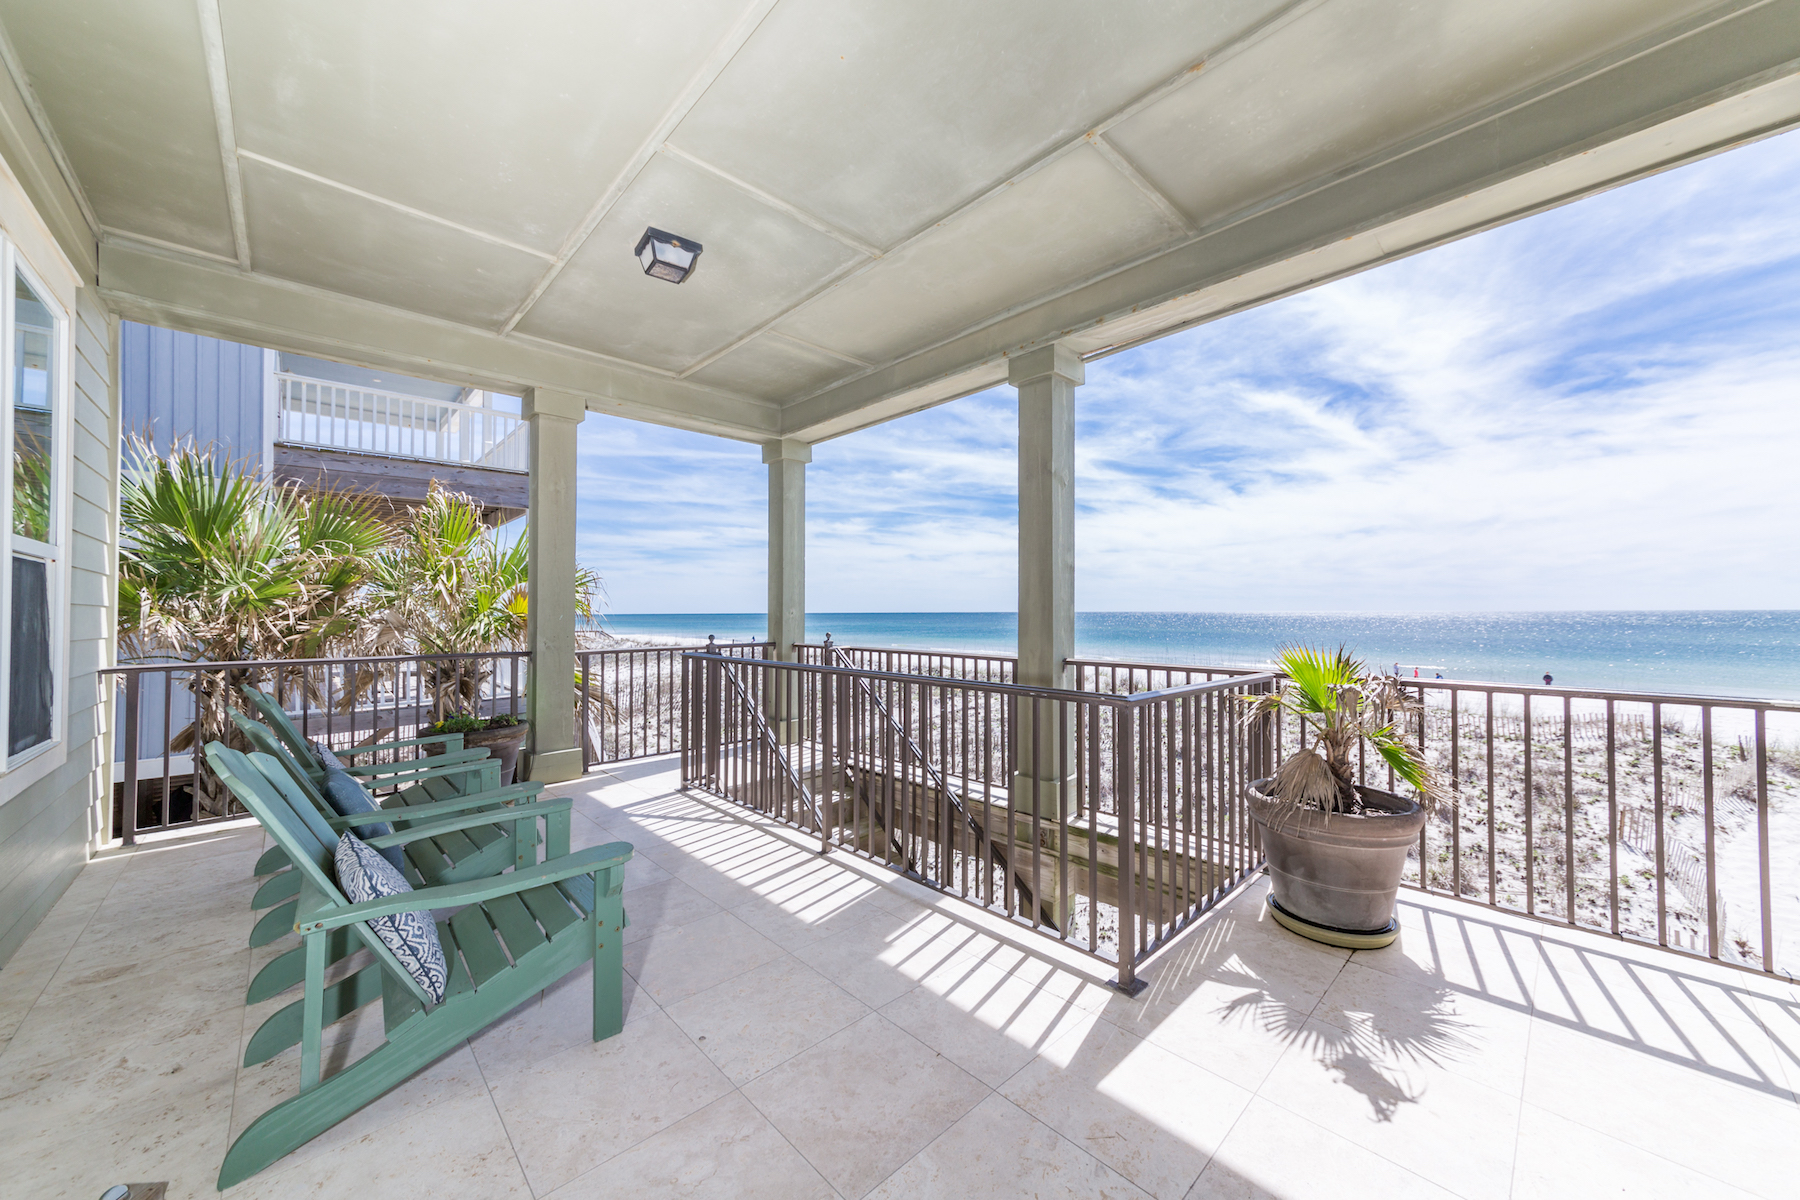 Single Family Home for Sale at Beach Mouse 1989 Beach Boulevard Gulf Shores, Alabama 36542 United States